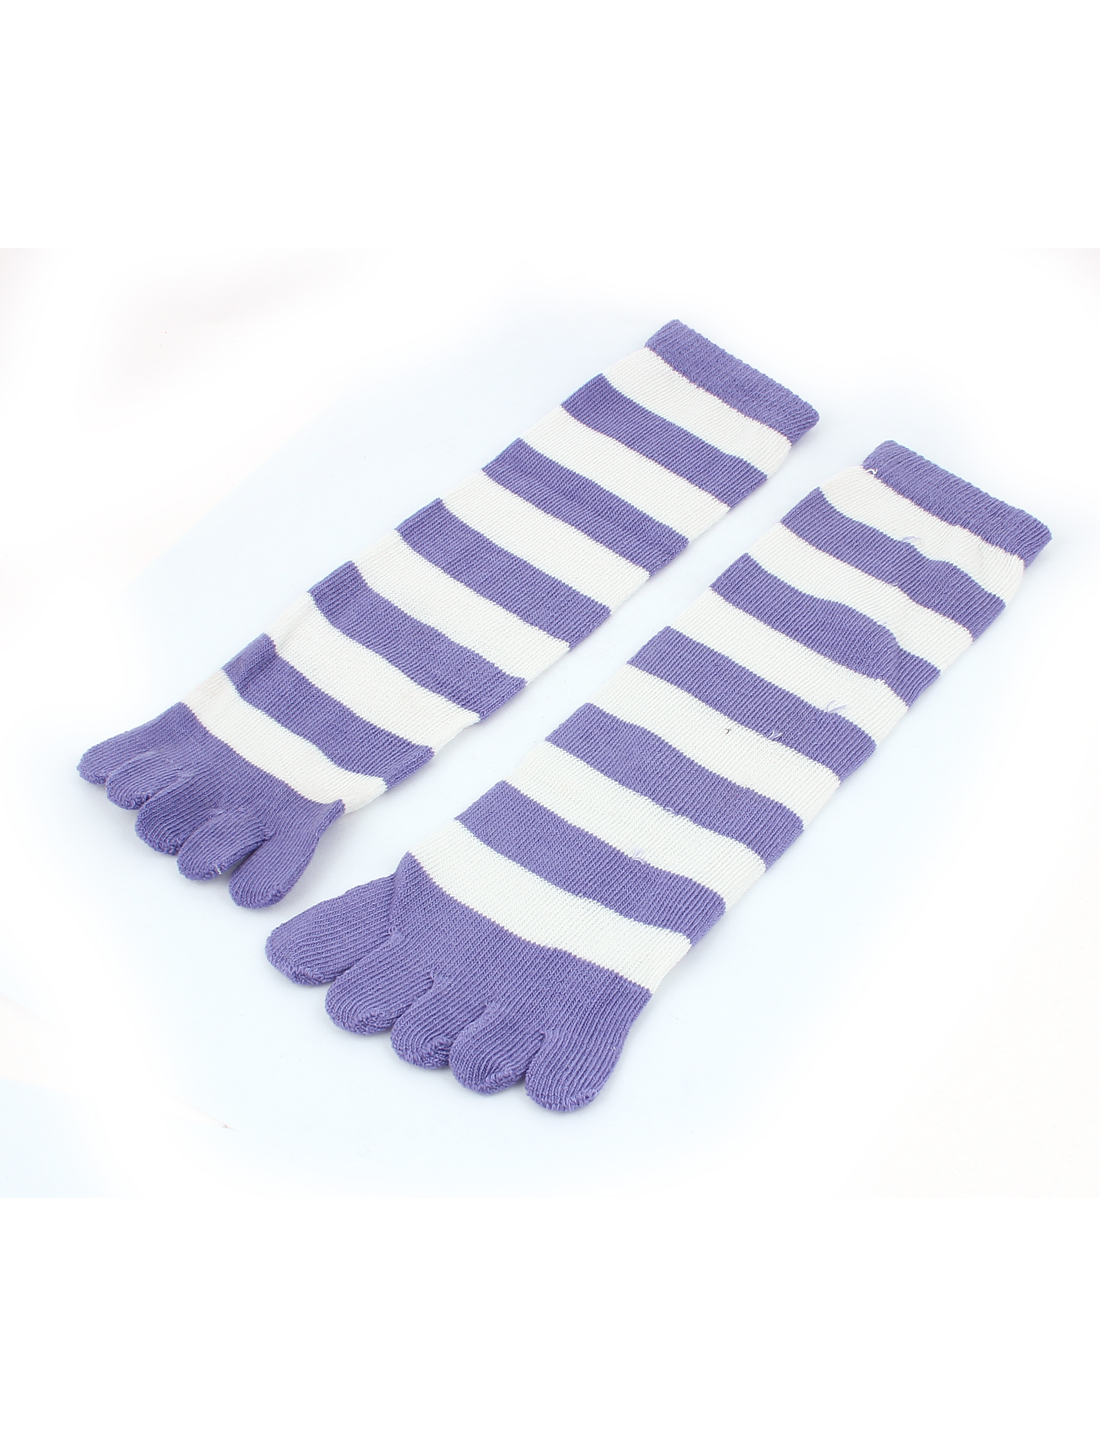 Women Stripes Pattern Elastic Ankle Length Five Fingers Full Toe Socks Purple Pair